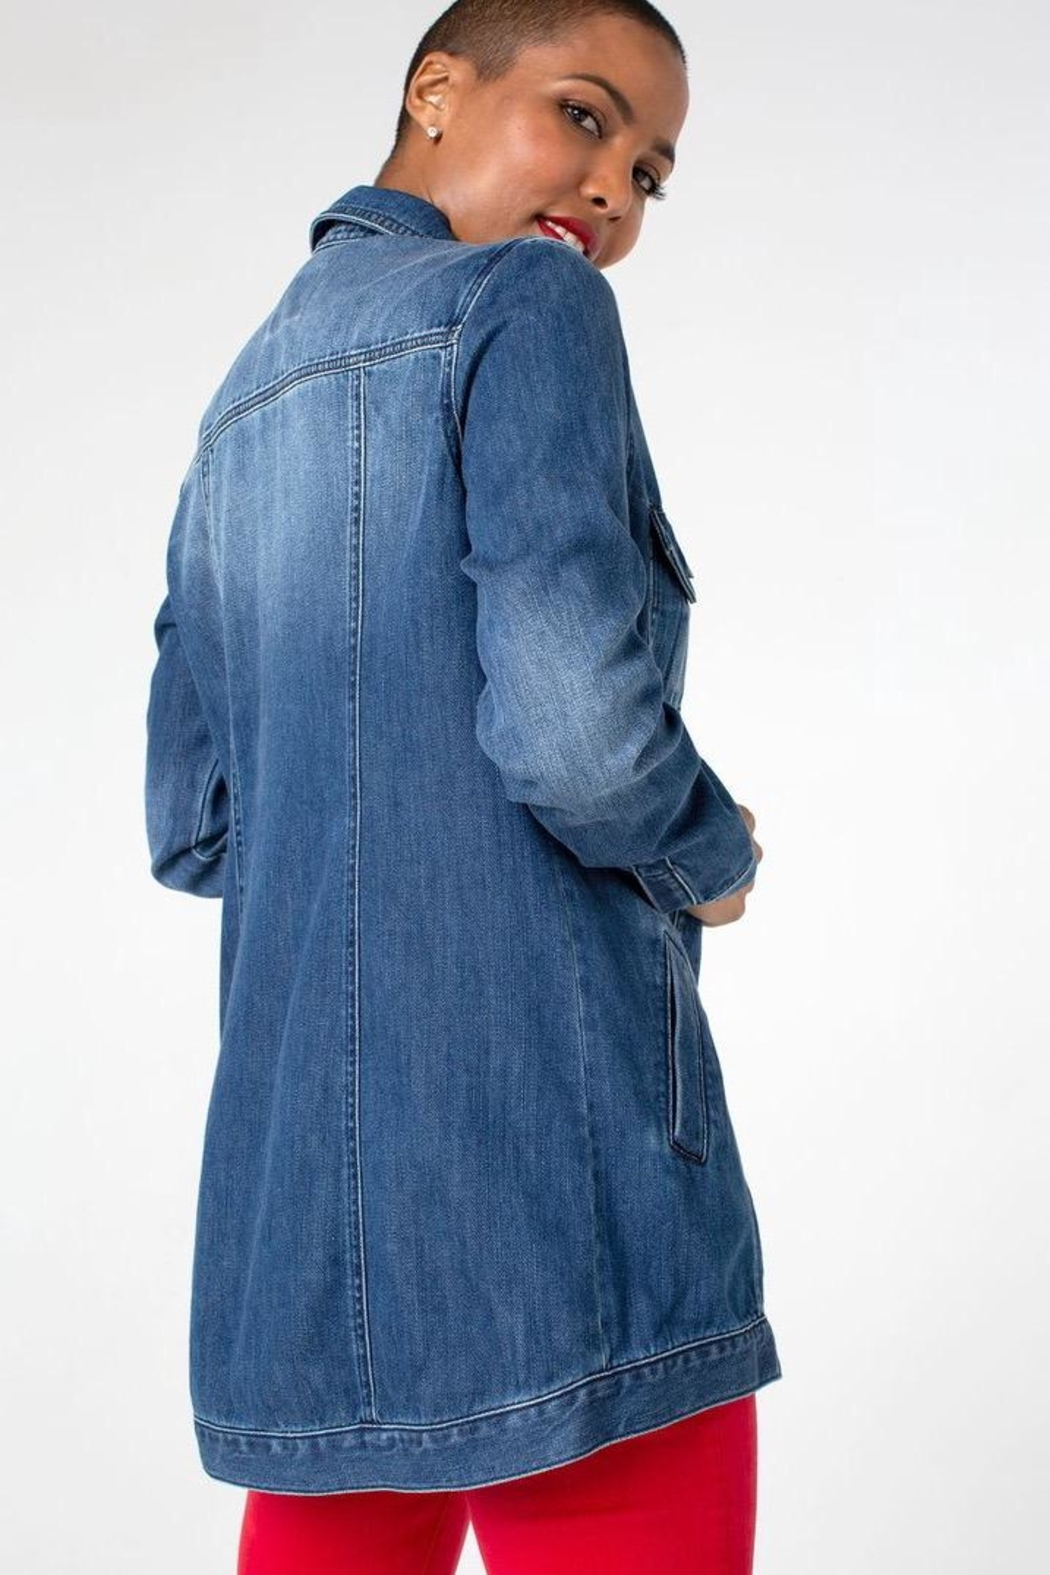 Liverpool Jeans Company Denim Shirt Jacket - Front Full Image